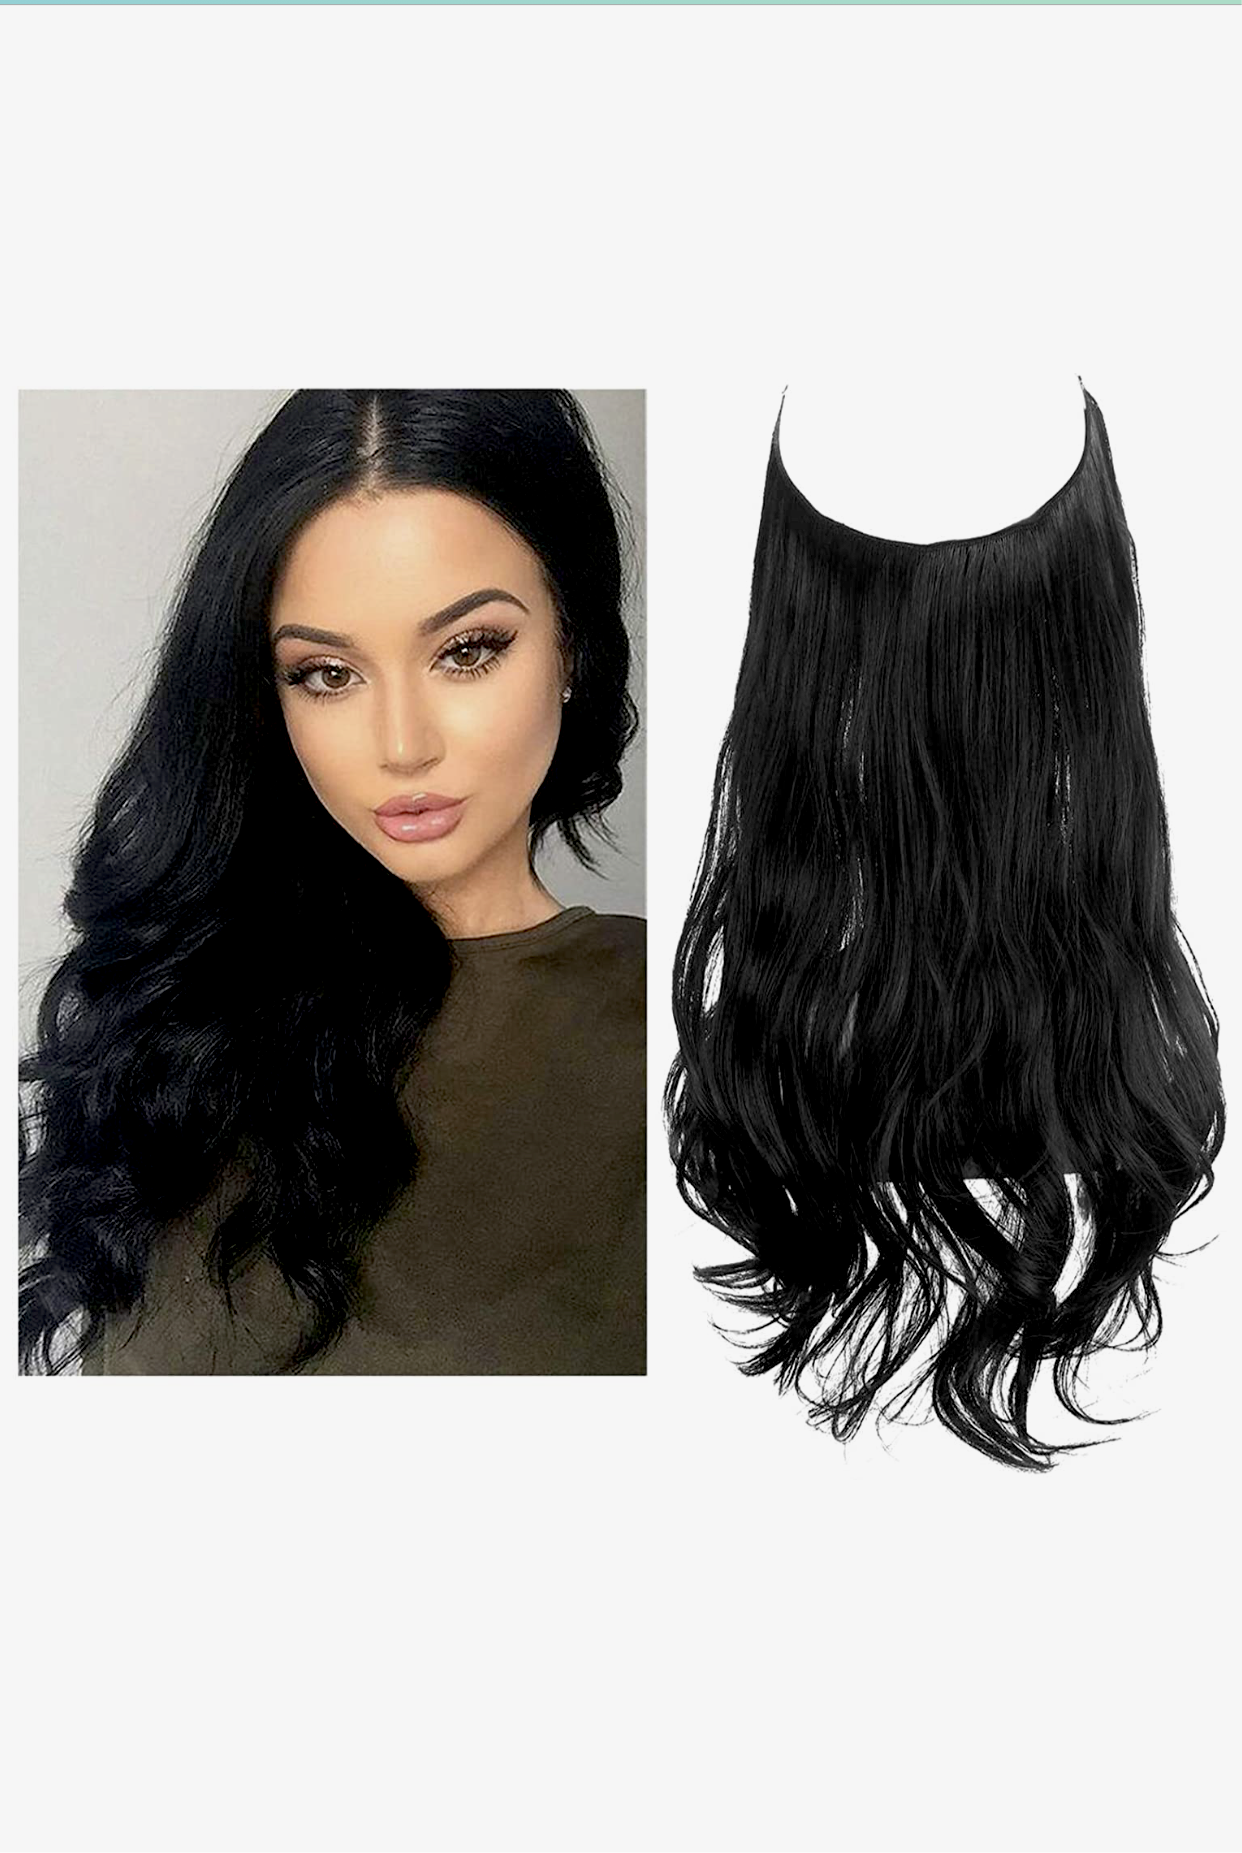 FRENCH Halo Extensions   SIZE 22 weight 125 gram / Natural Curly Gallery